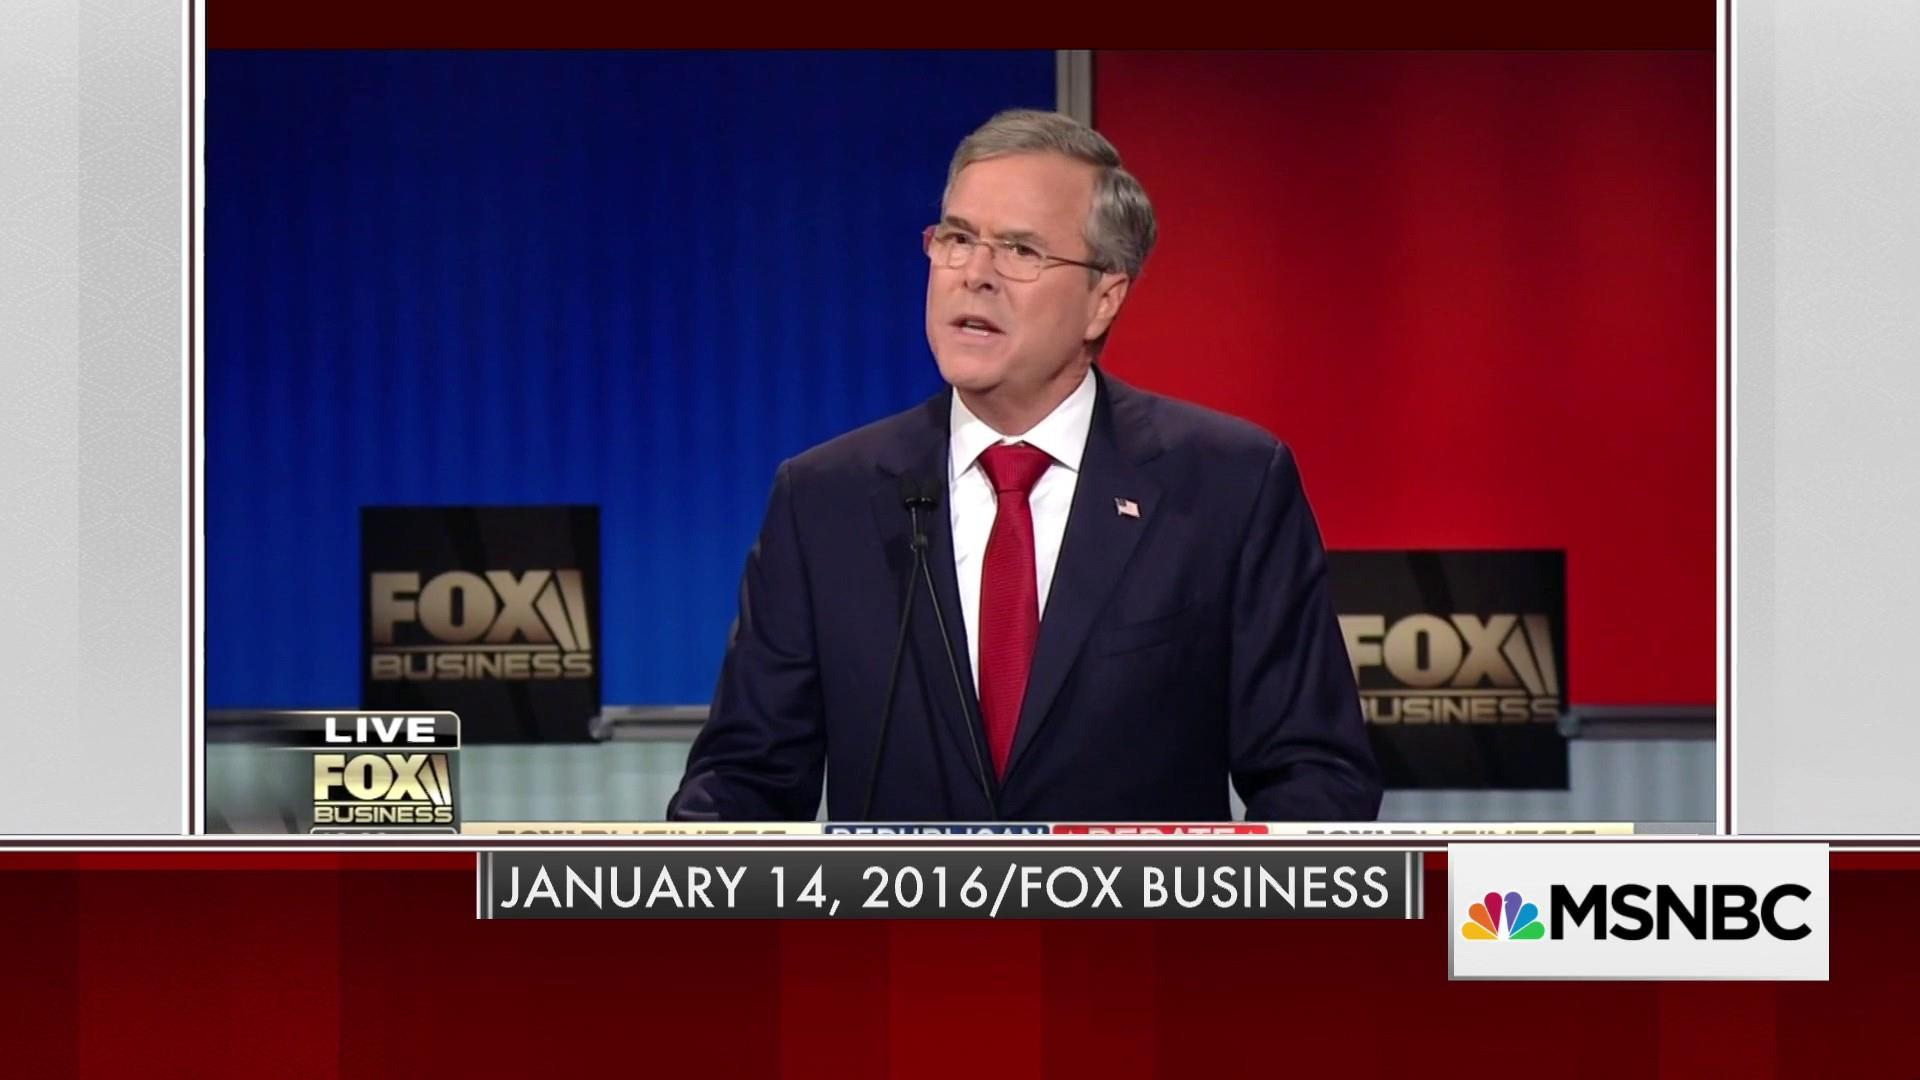 In 2016, Jeb got it right about a trade war